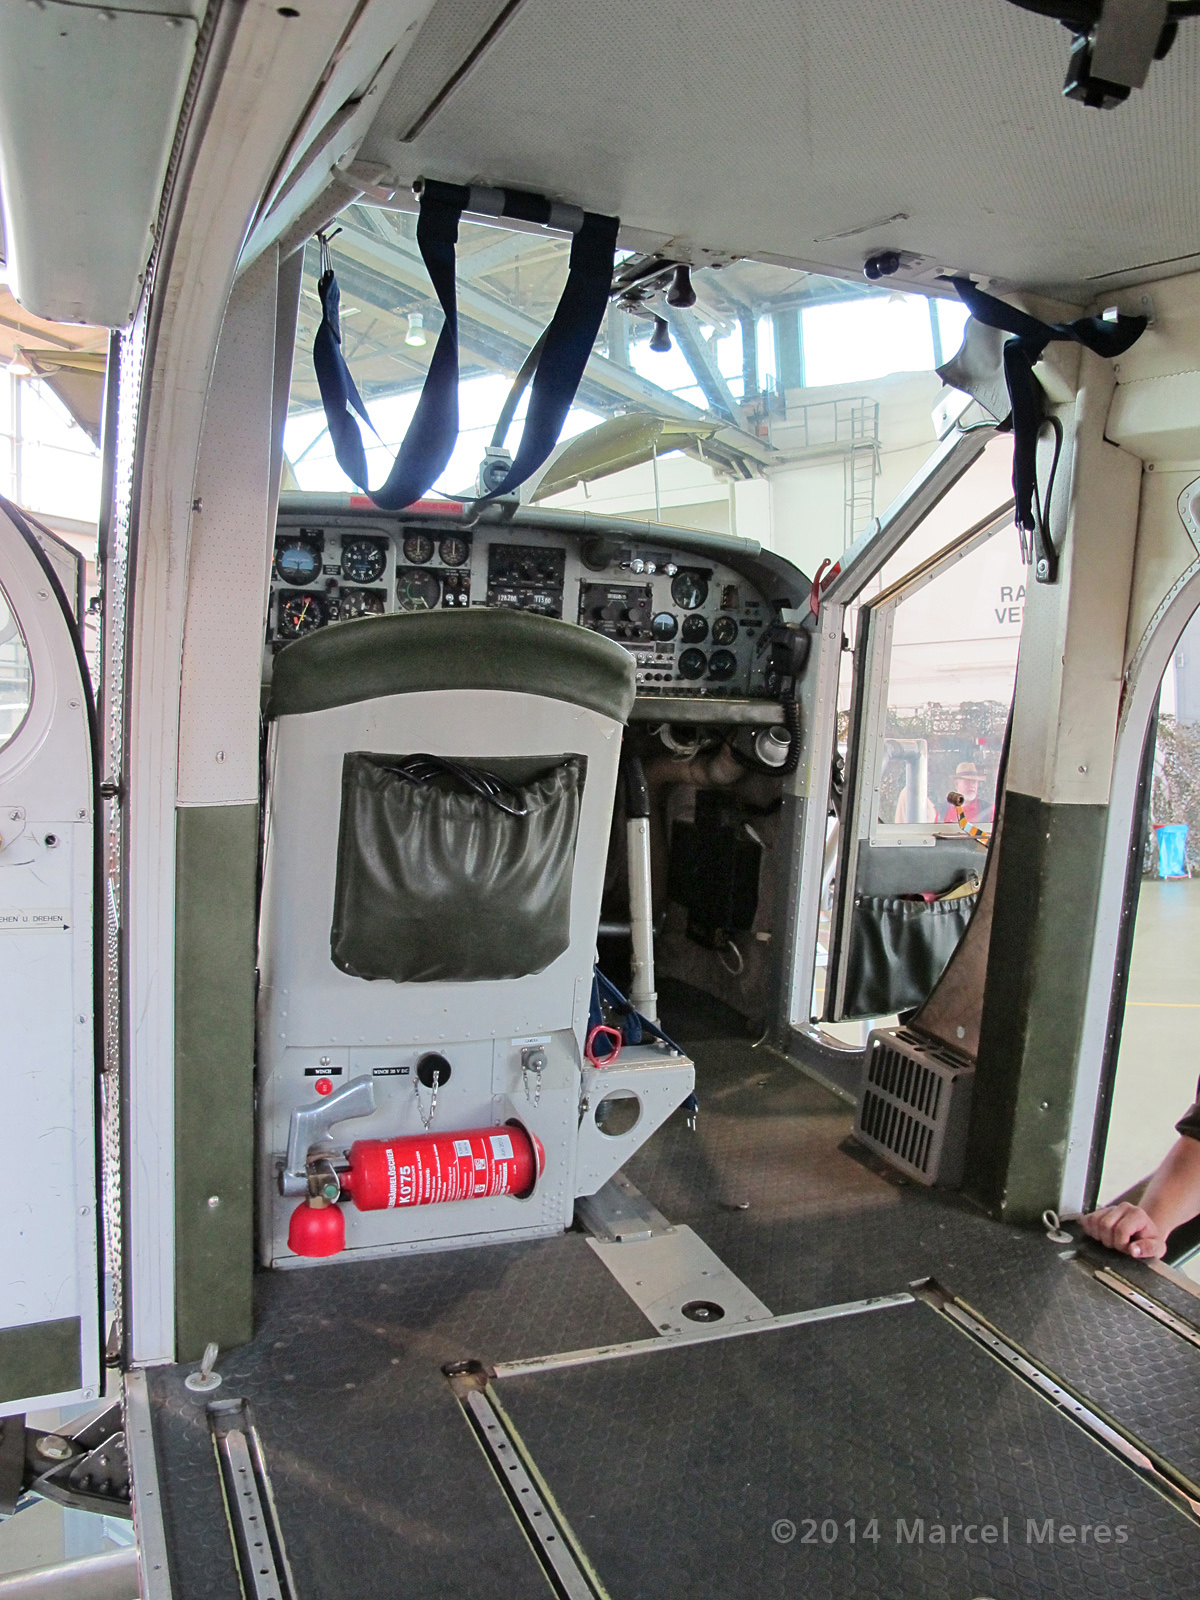 Pilatus Porter cockpit, overview, looking forward